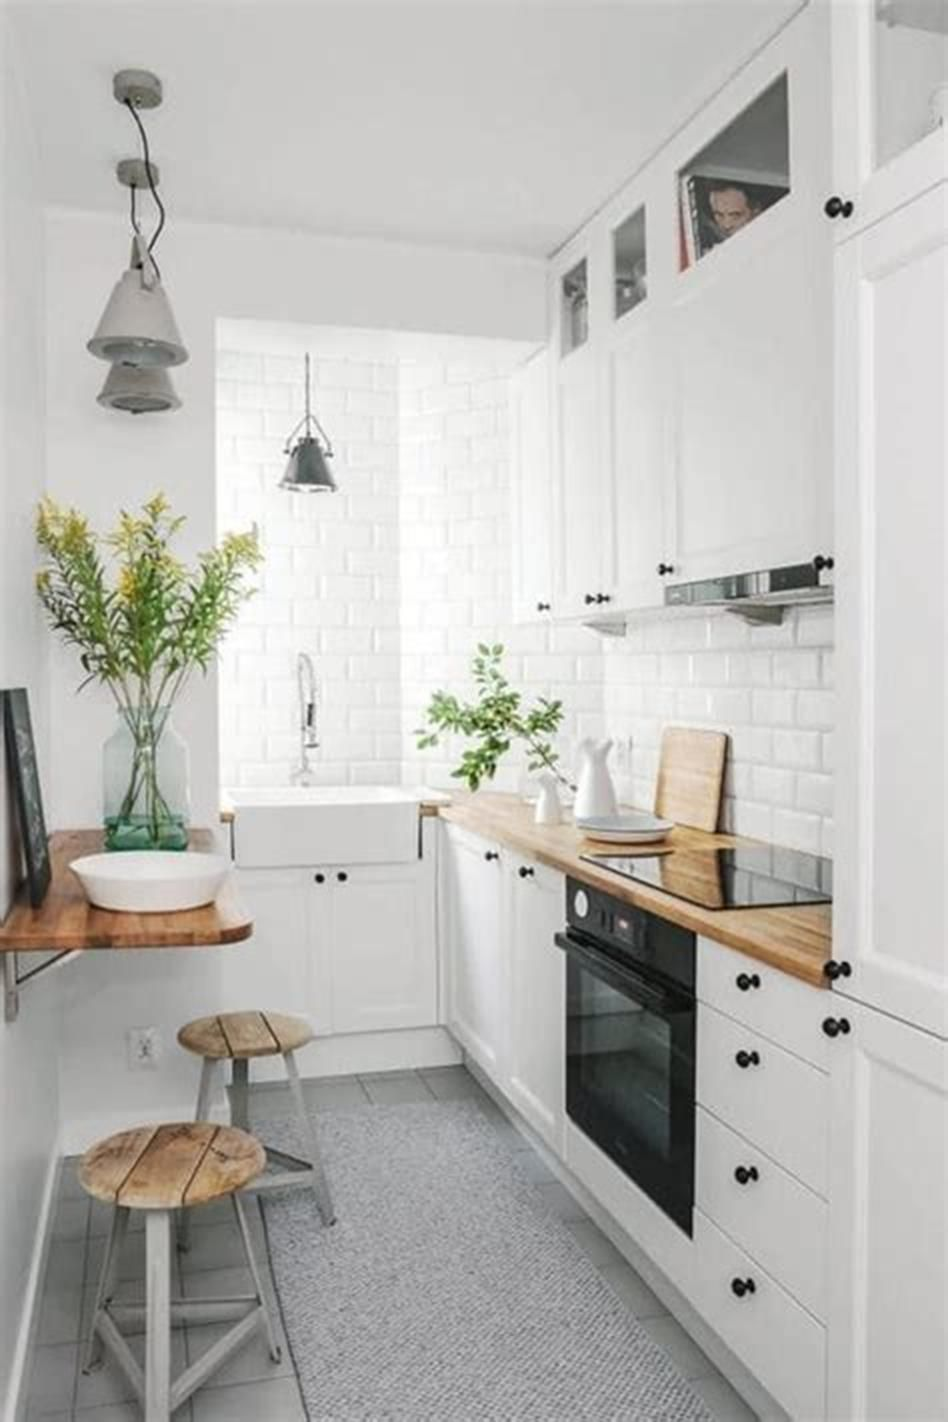 43 Amazing Kitchen Remodeling Ideas For Small Kitchens 2019 With